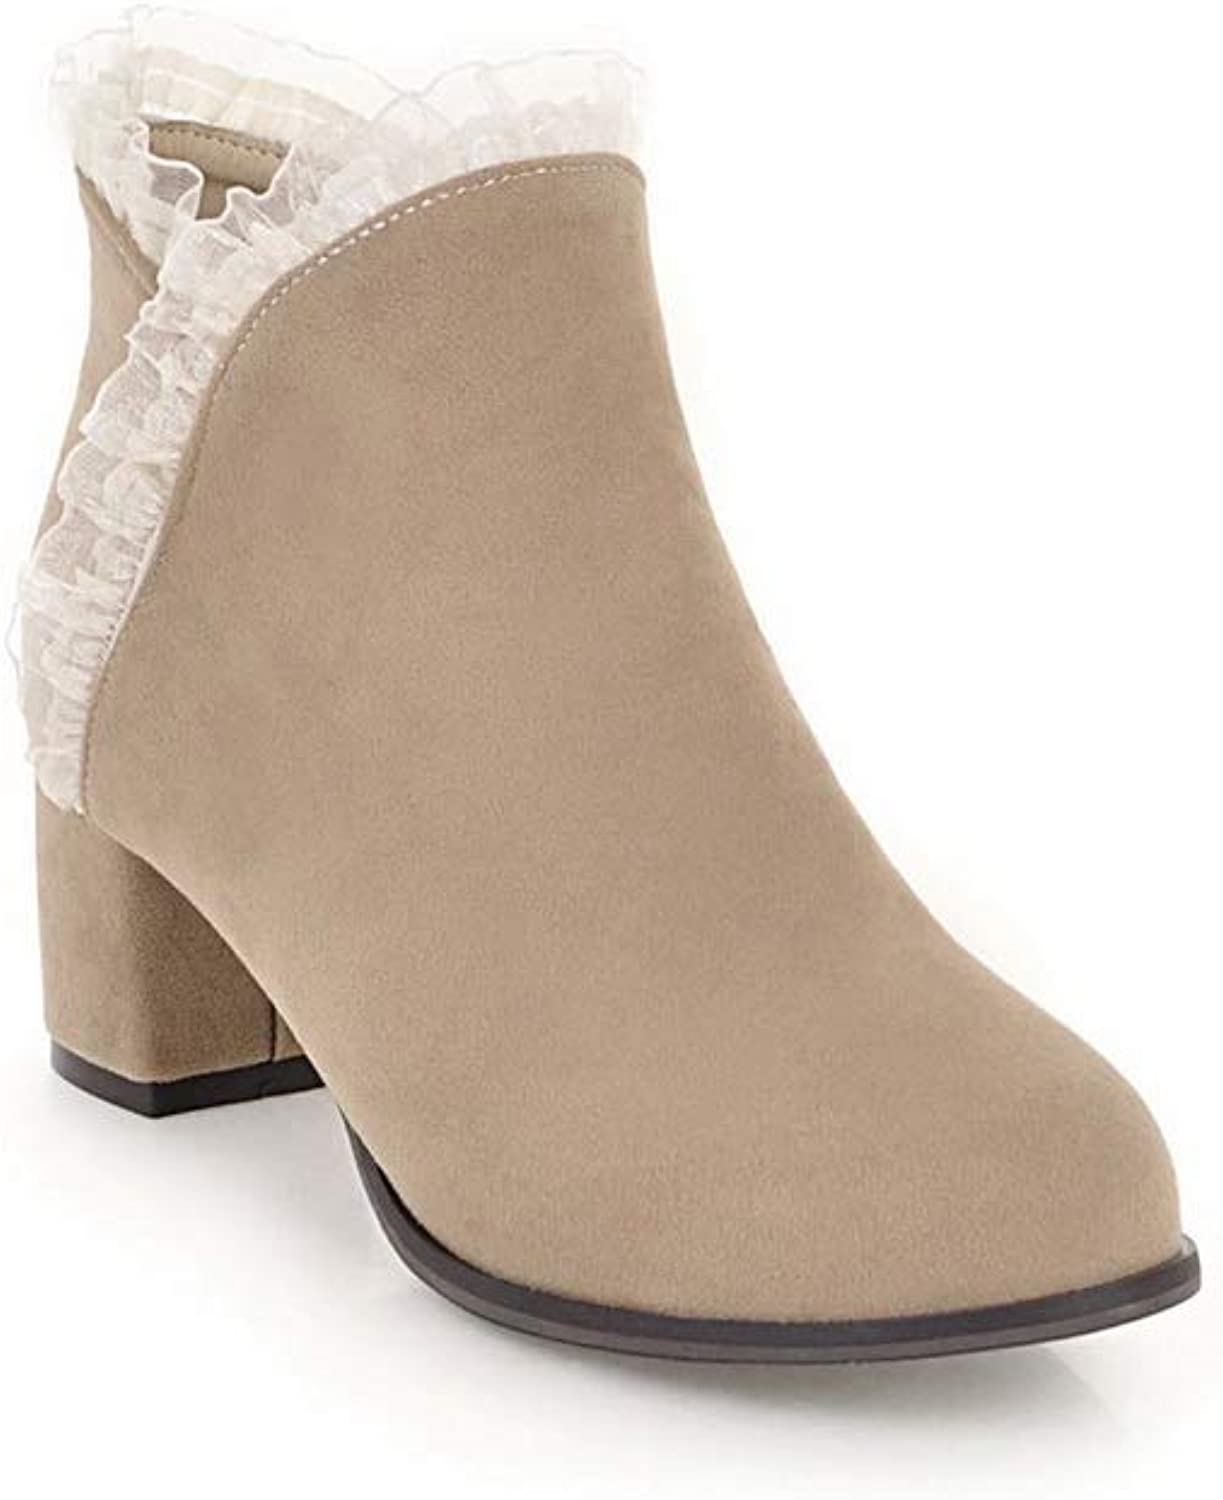 AN Womens Chunky Heels Lace Zipper Imitated Suede Boots DKU02035